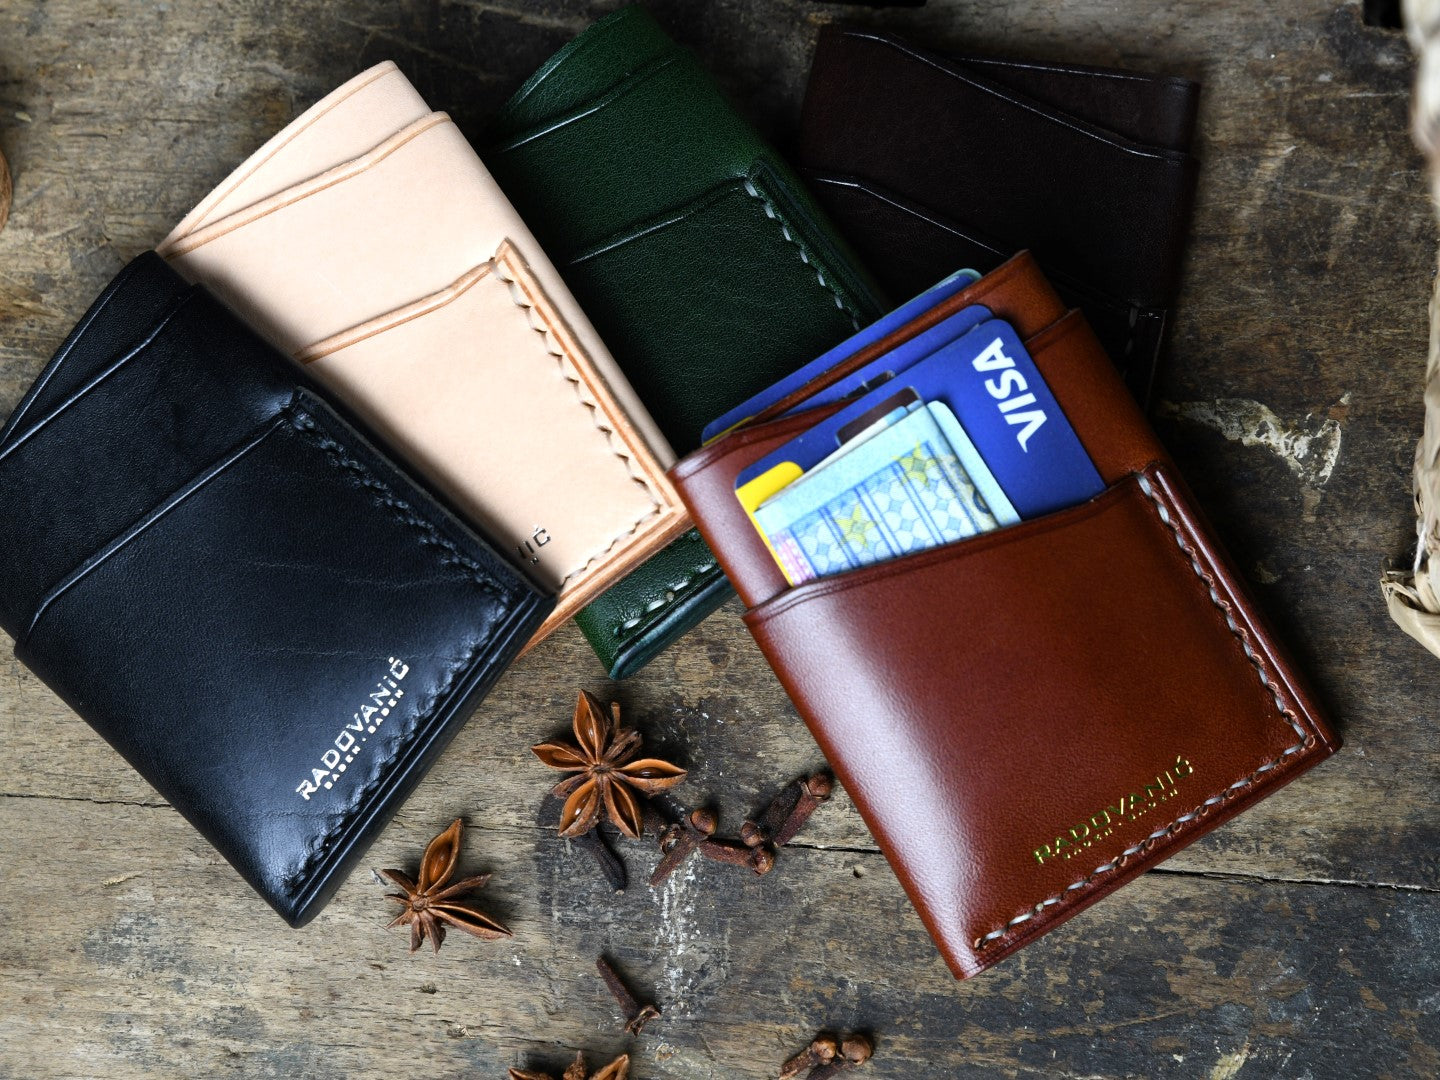 Leather Wallet Leather Case Leather Card Case EDC Cardholder EDC Wallet Personalized Minimalist Wallet EDC Card Wallet Card Holder